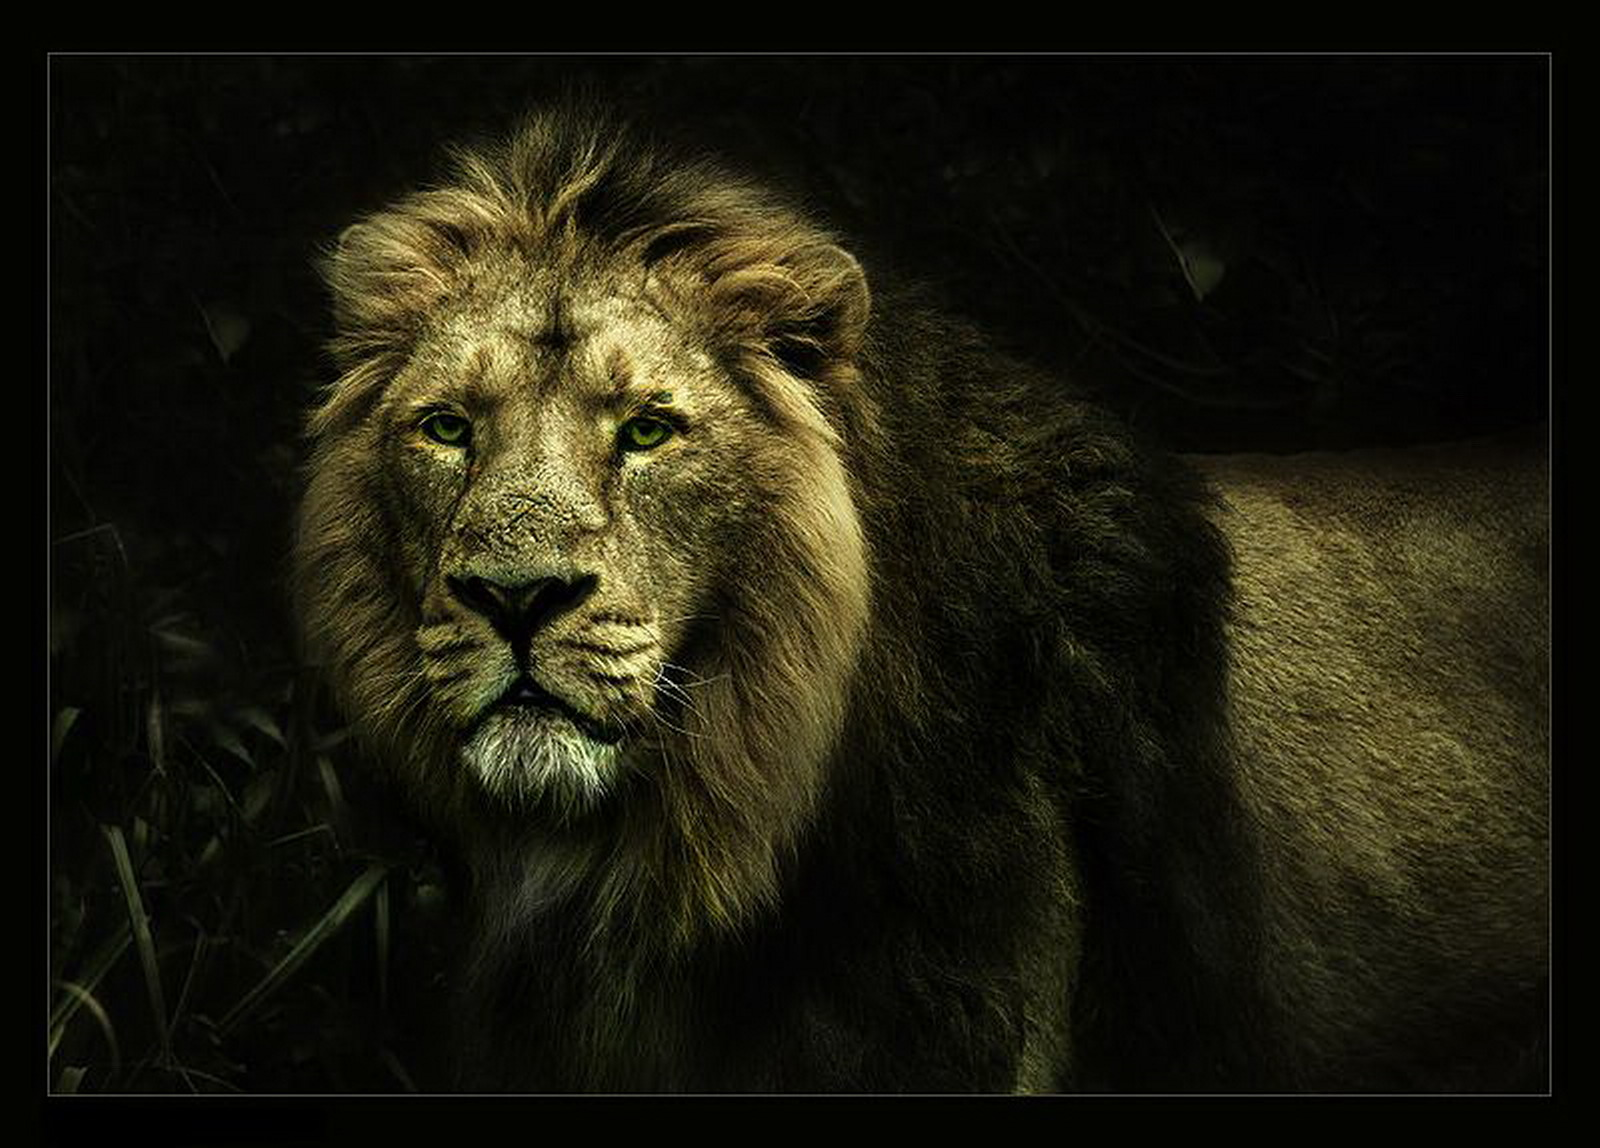 Free Lion Images Wallpaper - Hd Wallpaper Best Lion , HD Wallpaper & Backgrounds